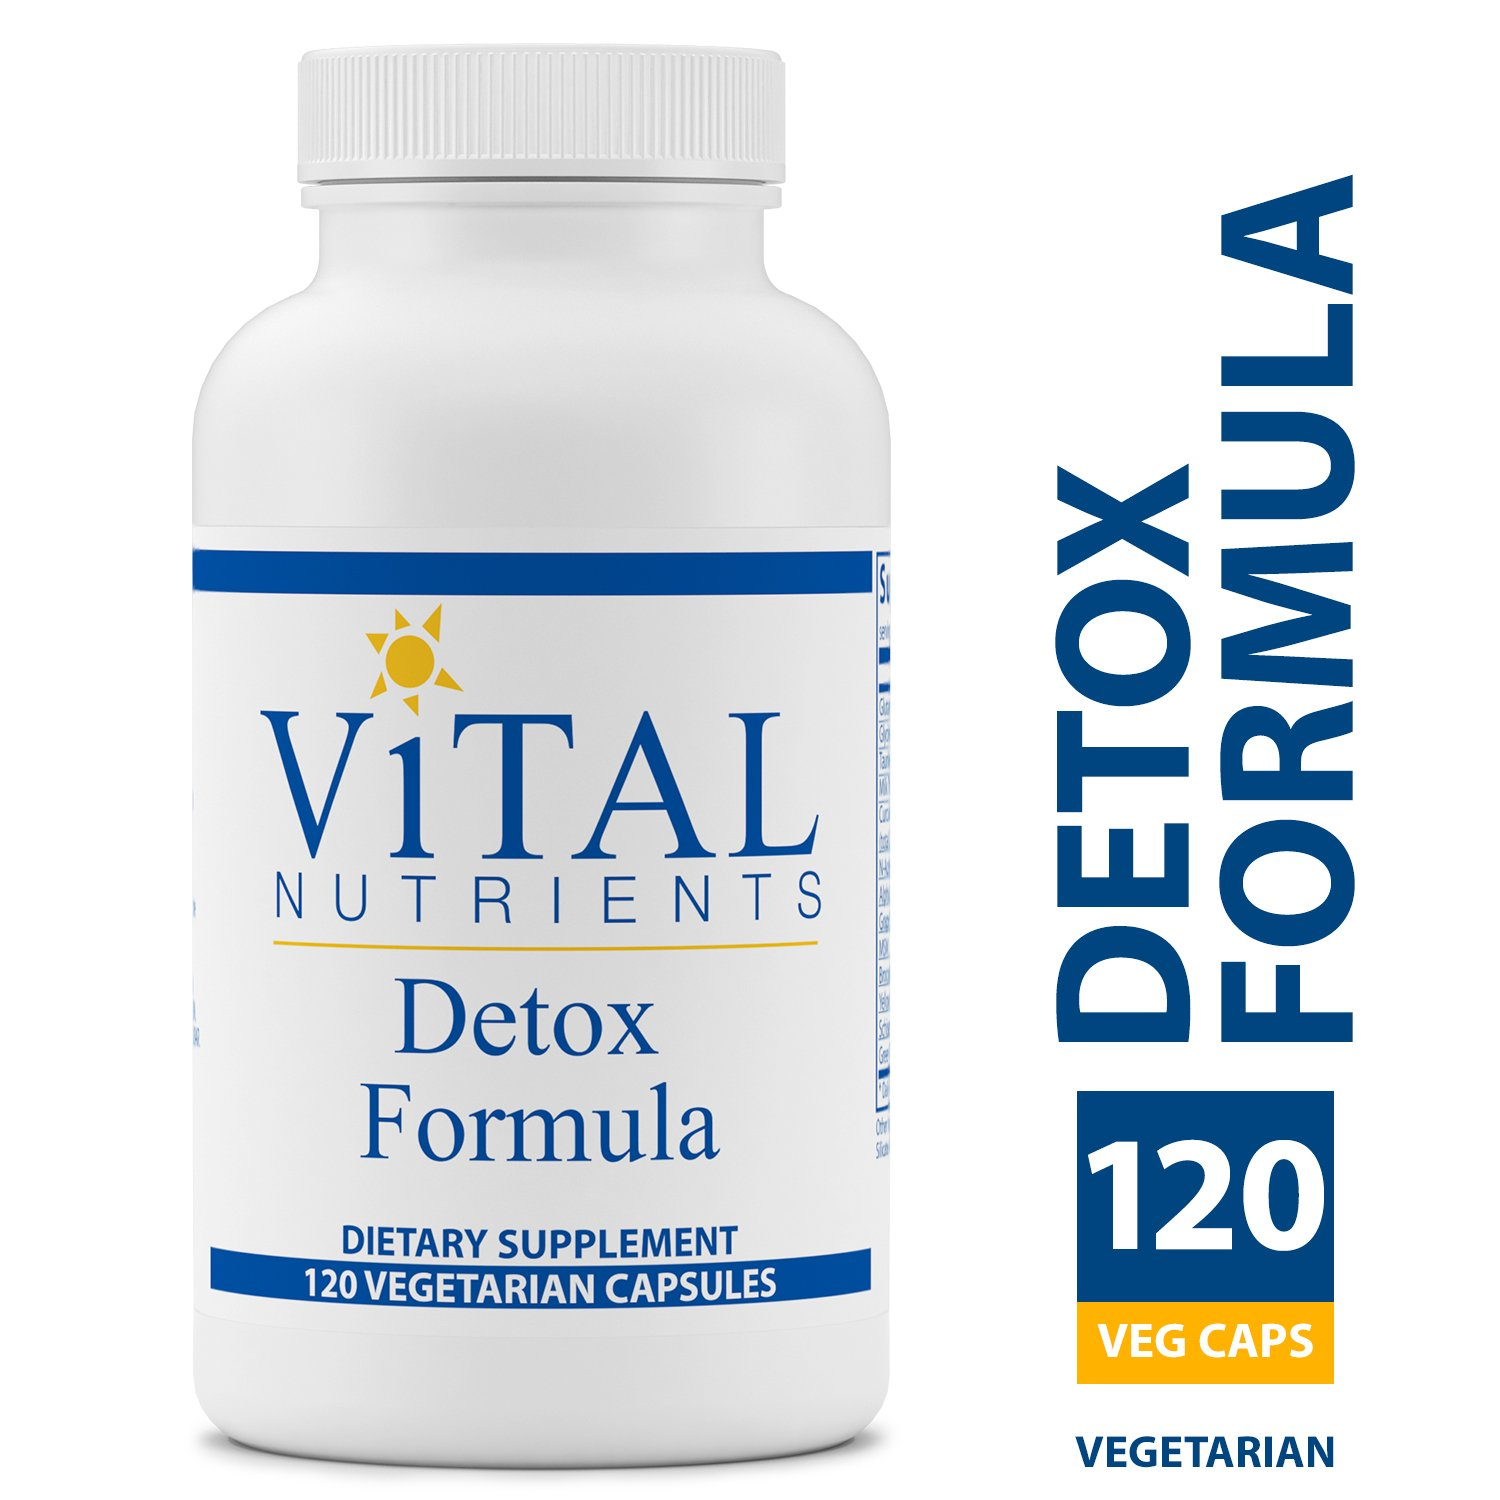 Vital Nutrients – Detox Formula – Specially Designed Formula for Liver and Detoxification Support – 120 Capsules per Bottle